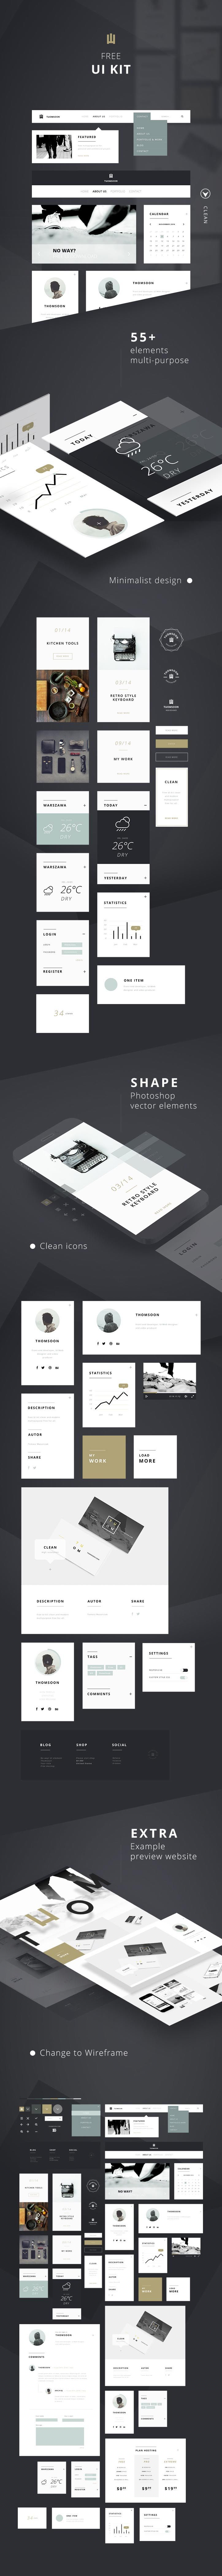 55+ Elements FREE UI KIT | Clean white [DOWNLOAD]